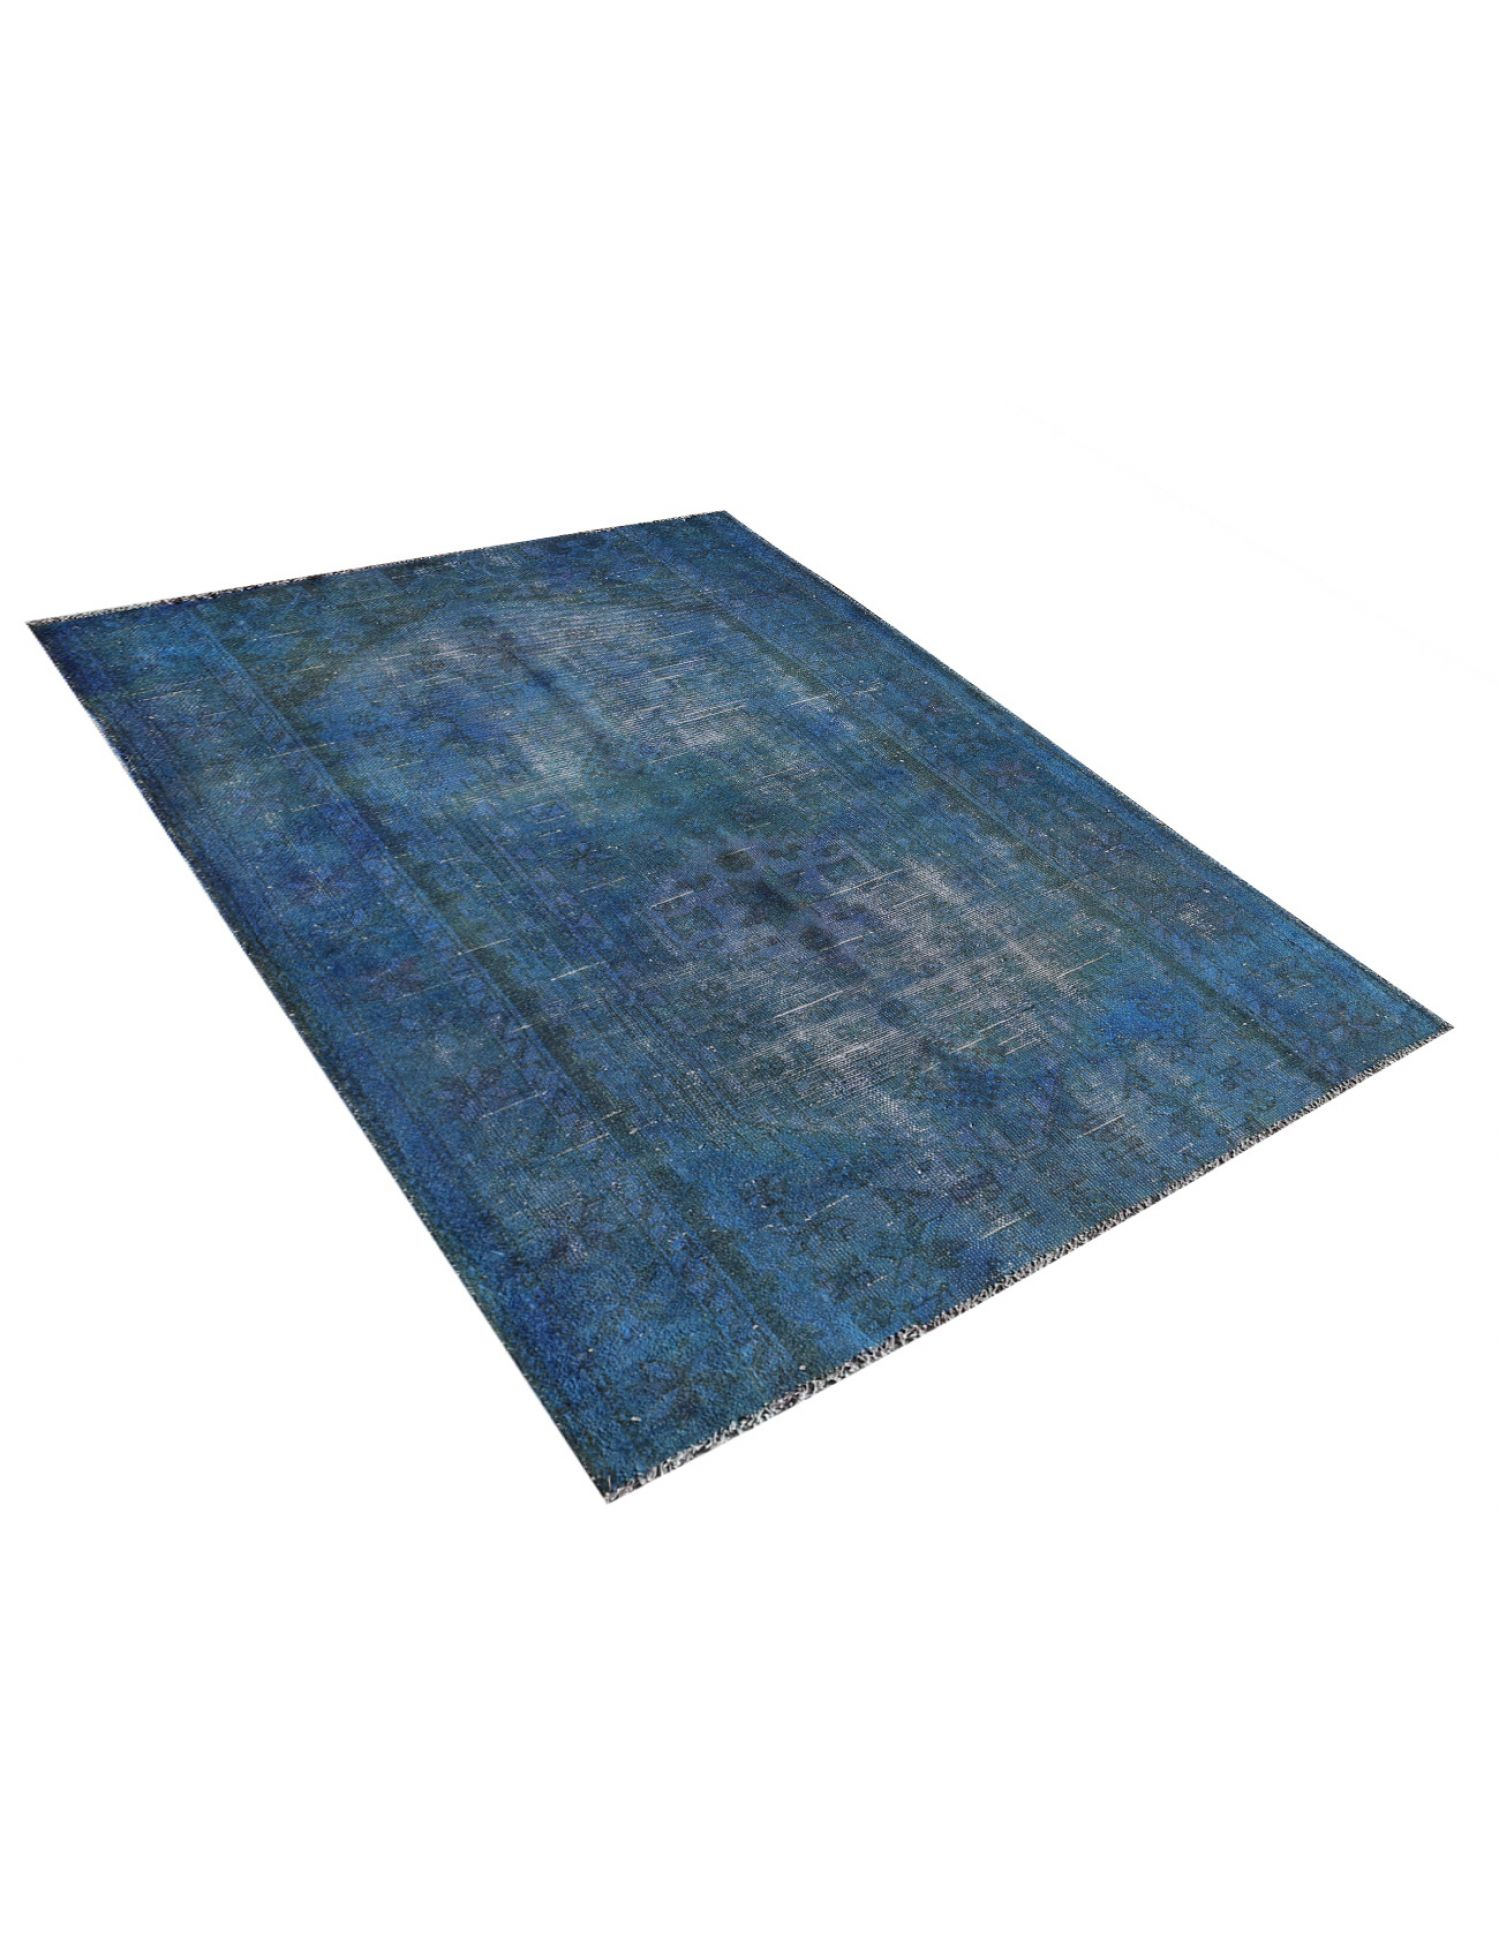 Vintage Carpet  blue <br/>184 x 131 cm